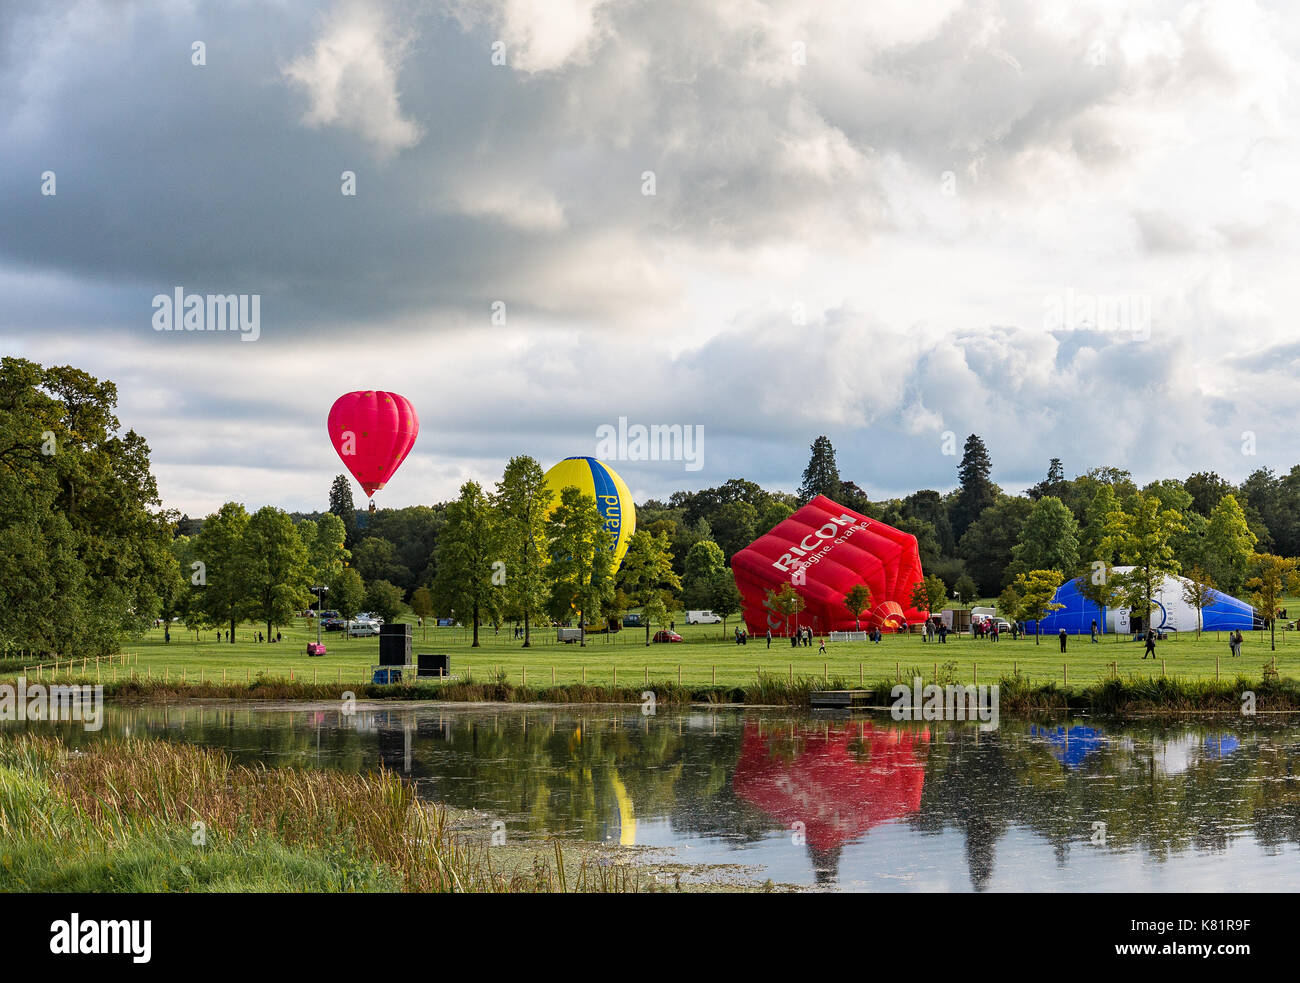 Longleat Sky Safari held at Loingleat Safari Park in Warminster Wilts. - Stock Image